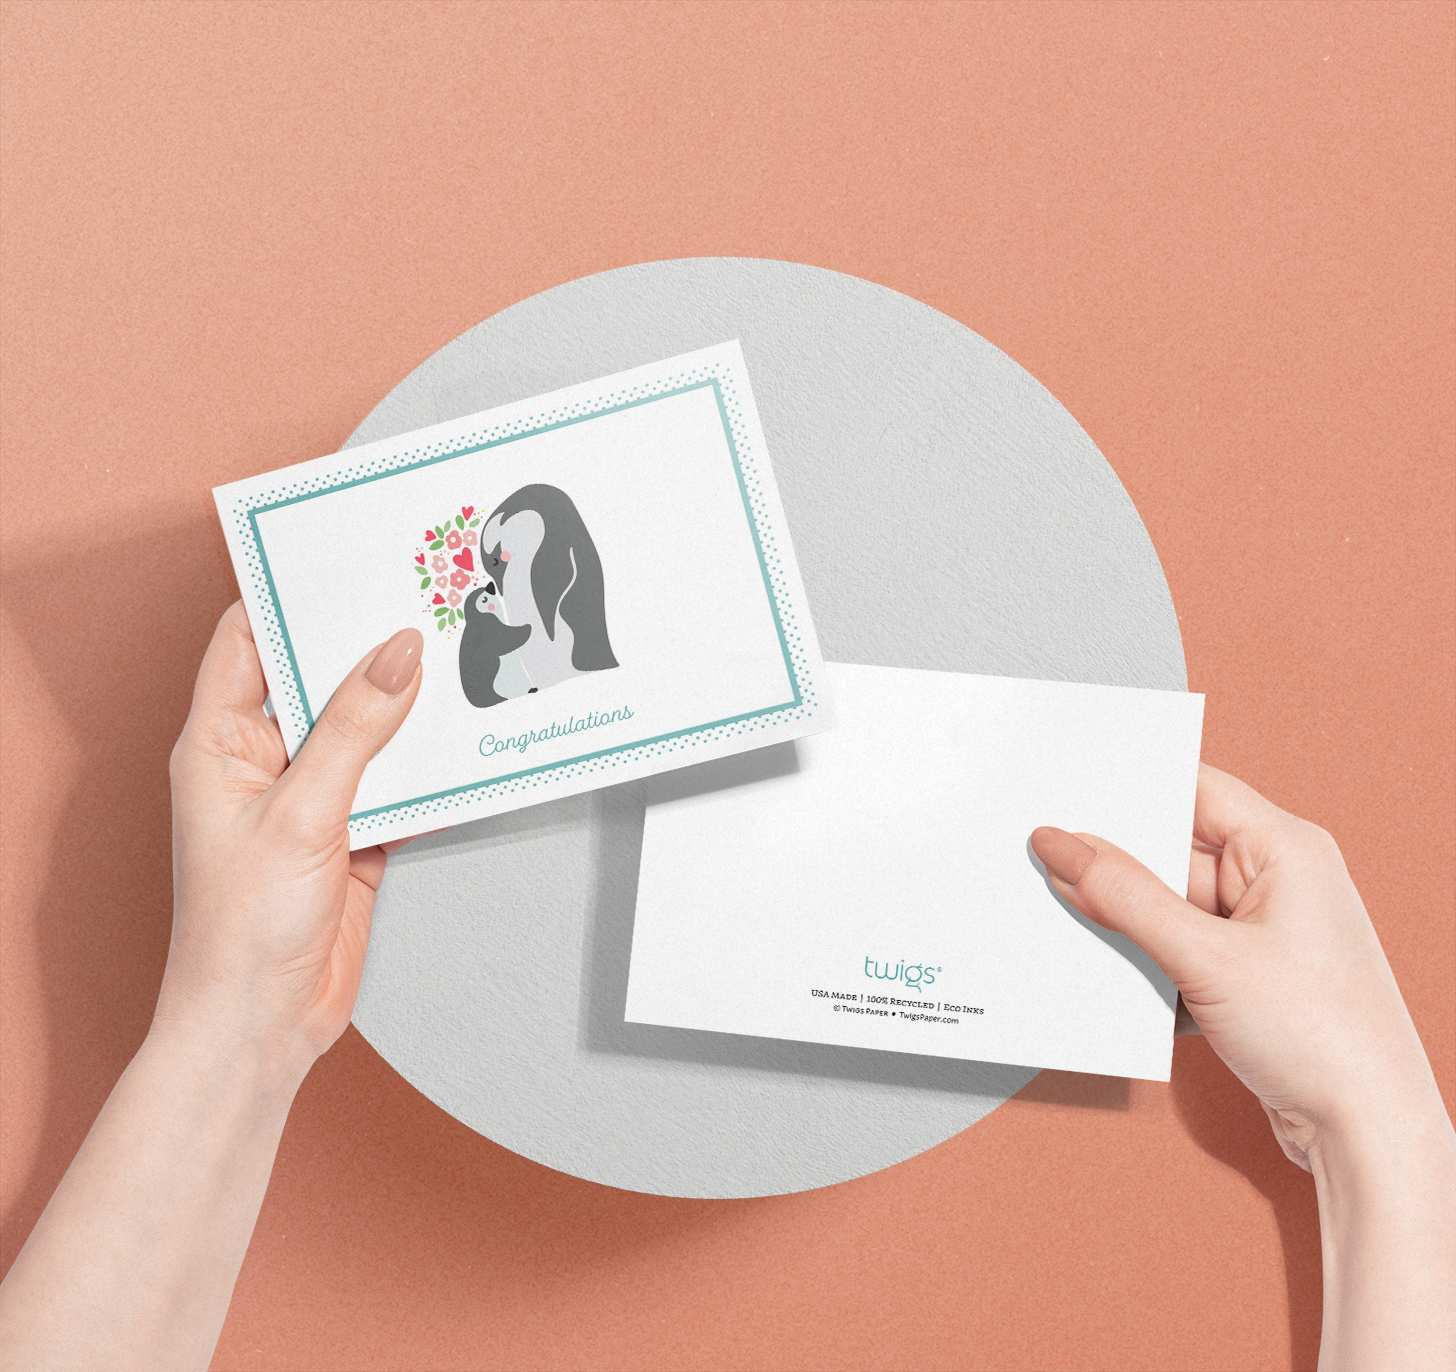 Woman's hands holding two cards with mother and baby penguin designs